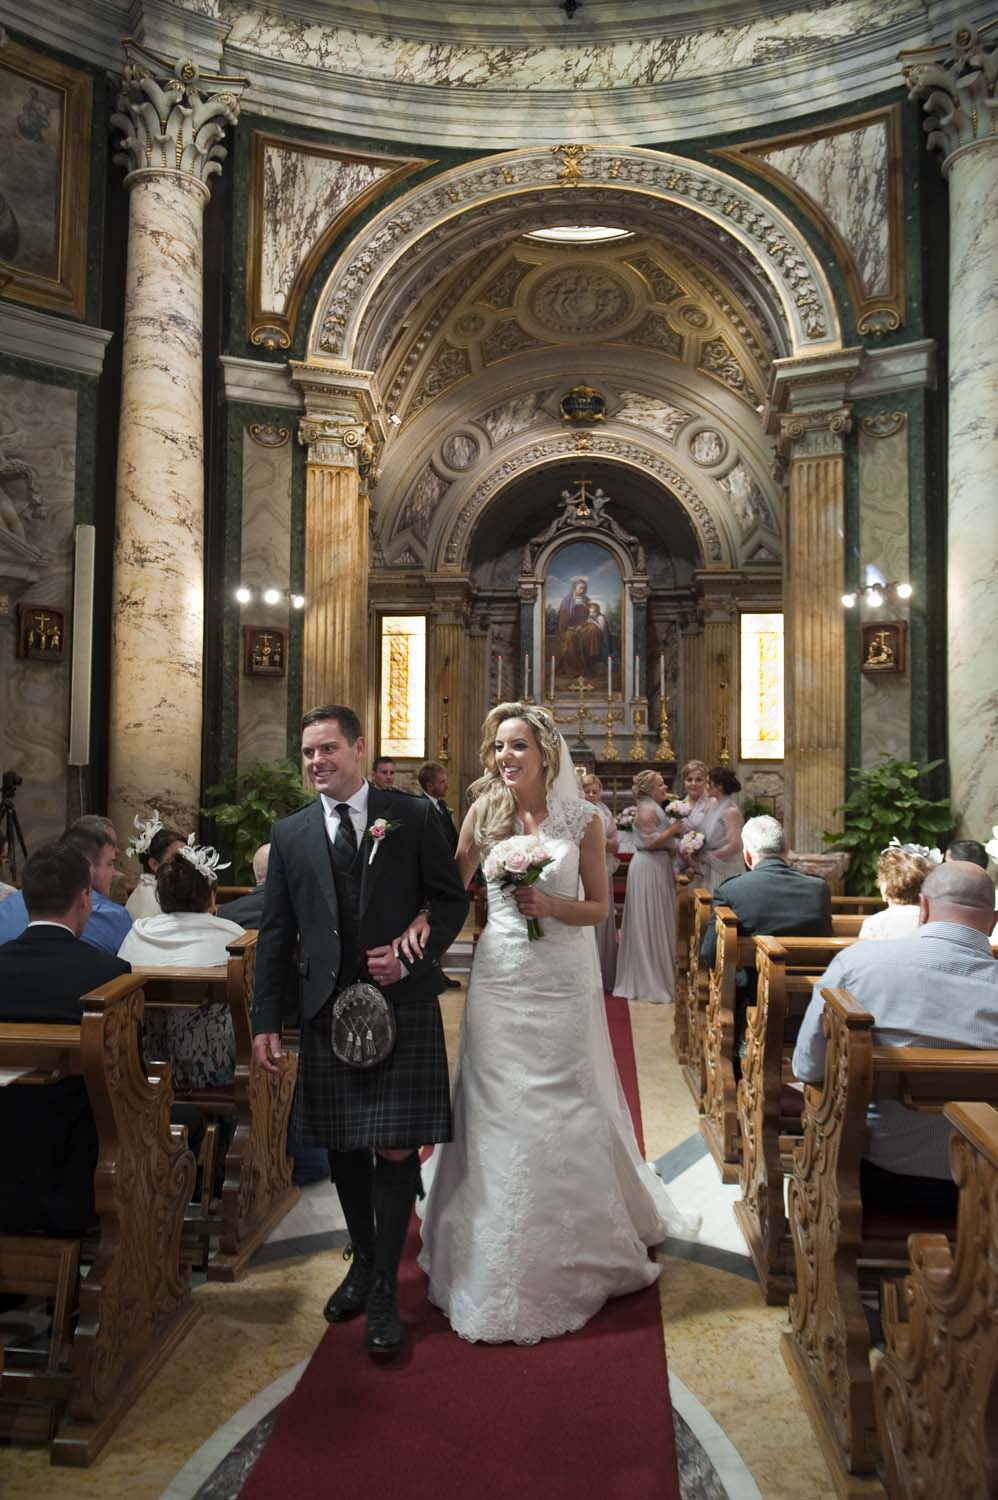 Bride and groom exit from the Church in Vatican, Rome